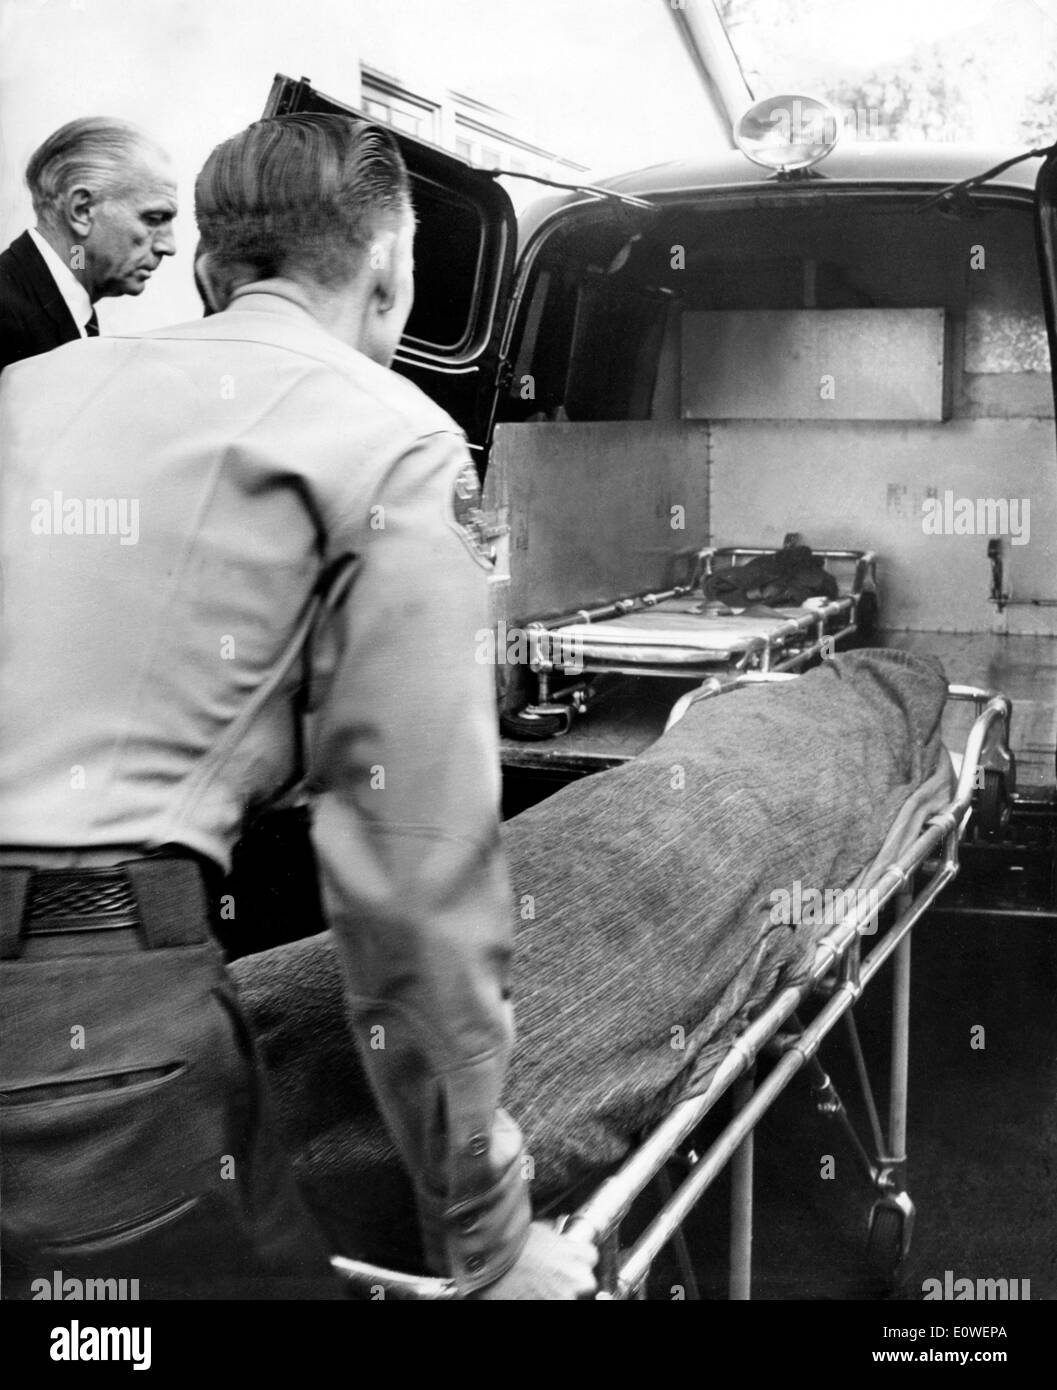 Cloaked corpse of starlet Marilyn Monroe after she was found dead - Stock Image